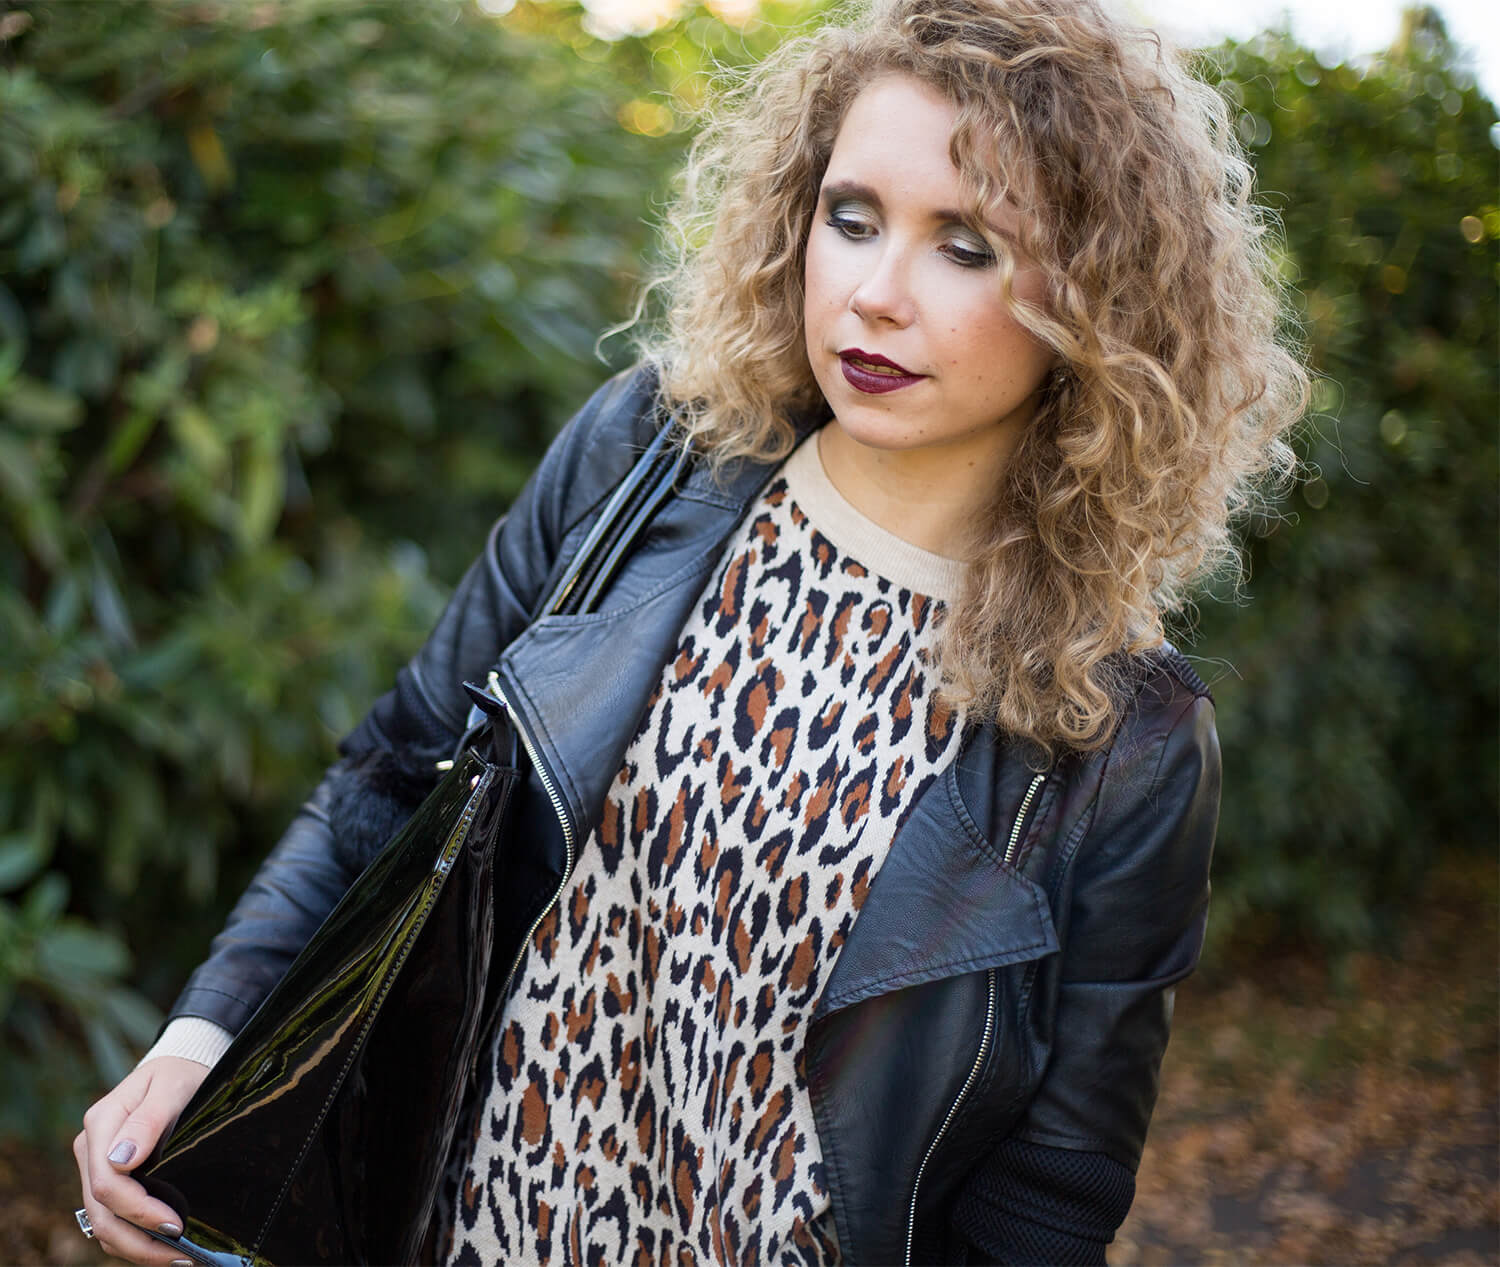 Outfit: Indian Summer with Leo Print, Fishnet and Leather